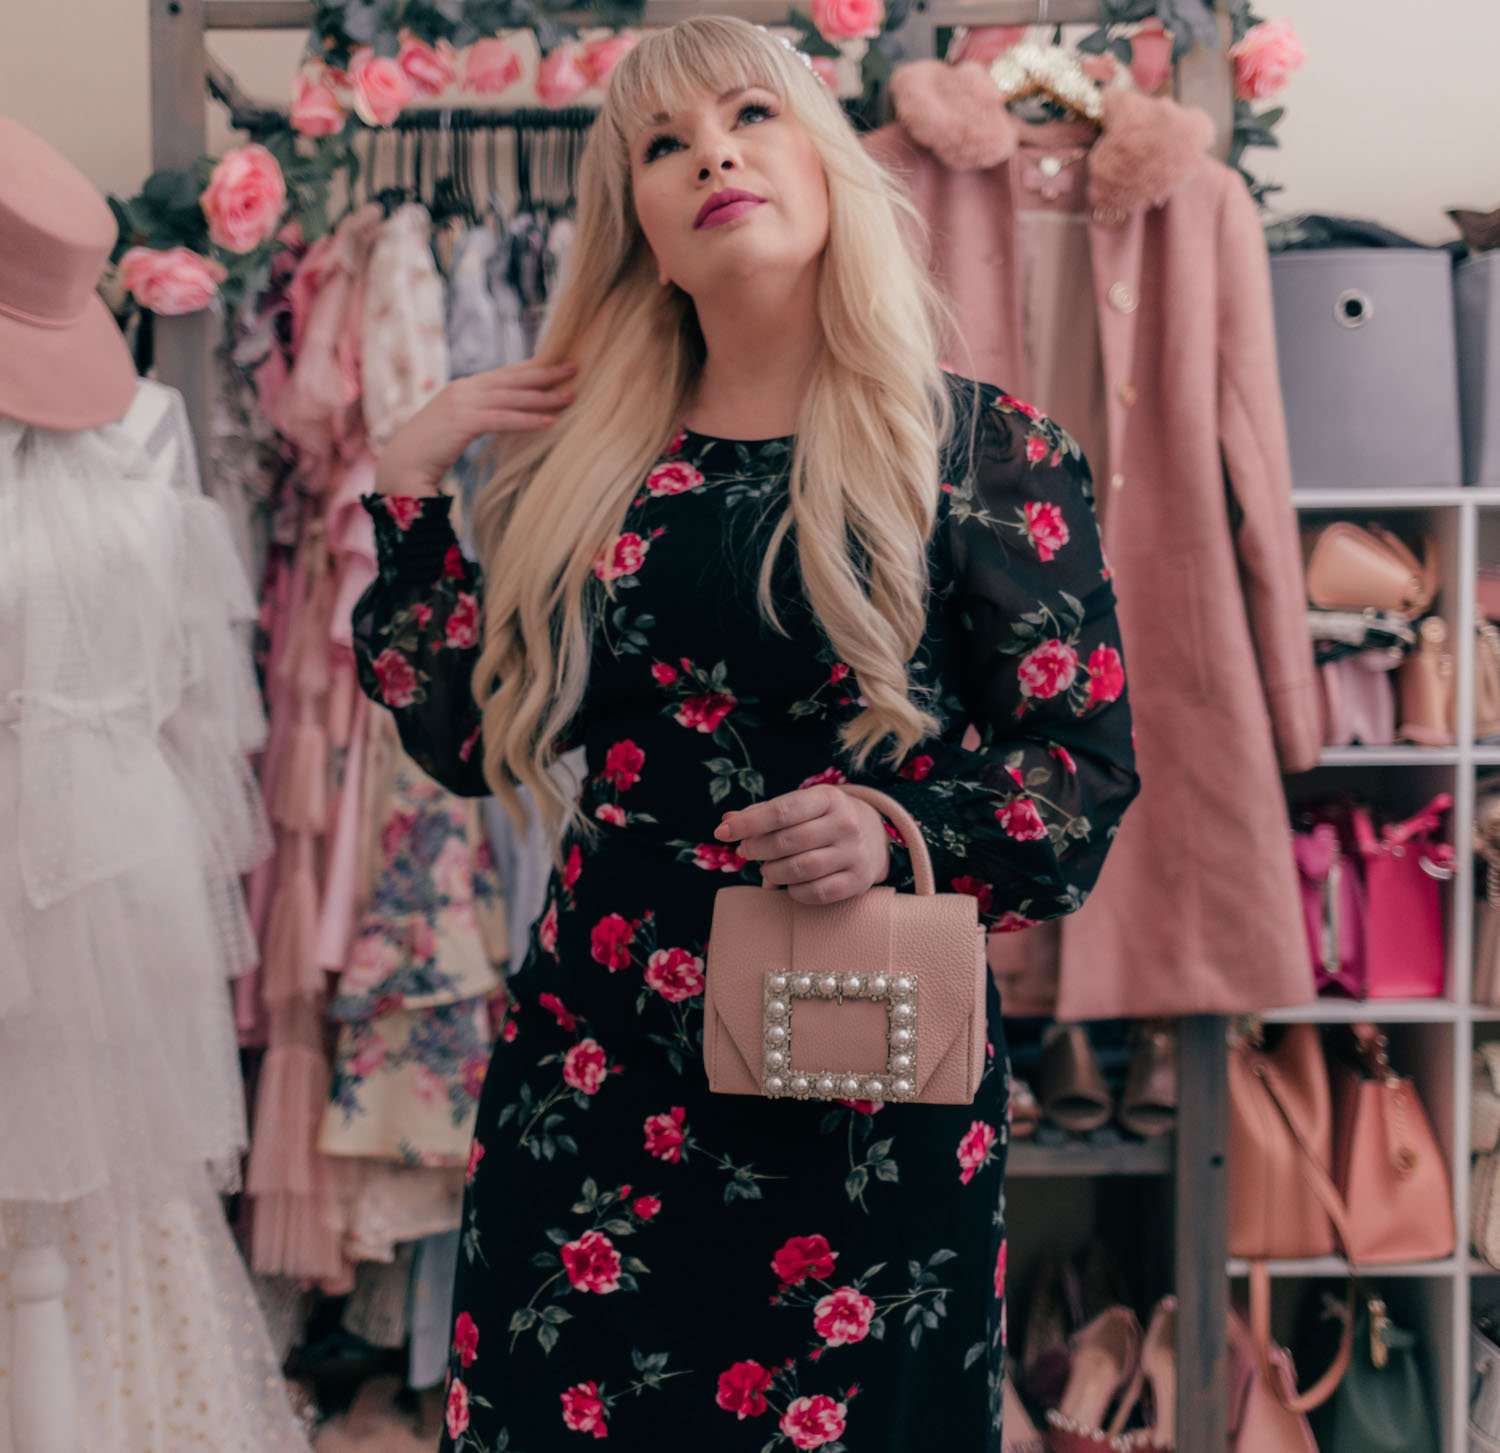 Fashion Blogger Elizabeth Hugen of Lizzie in Lace styles a black floral dress and pink Kate Spade bag